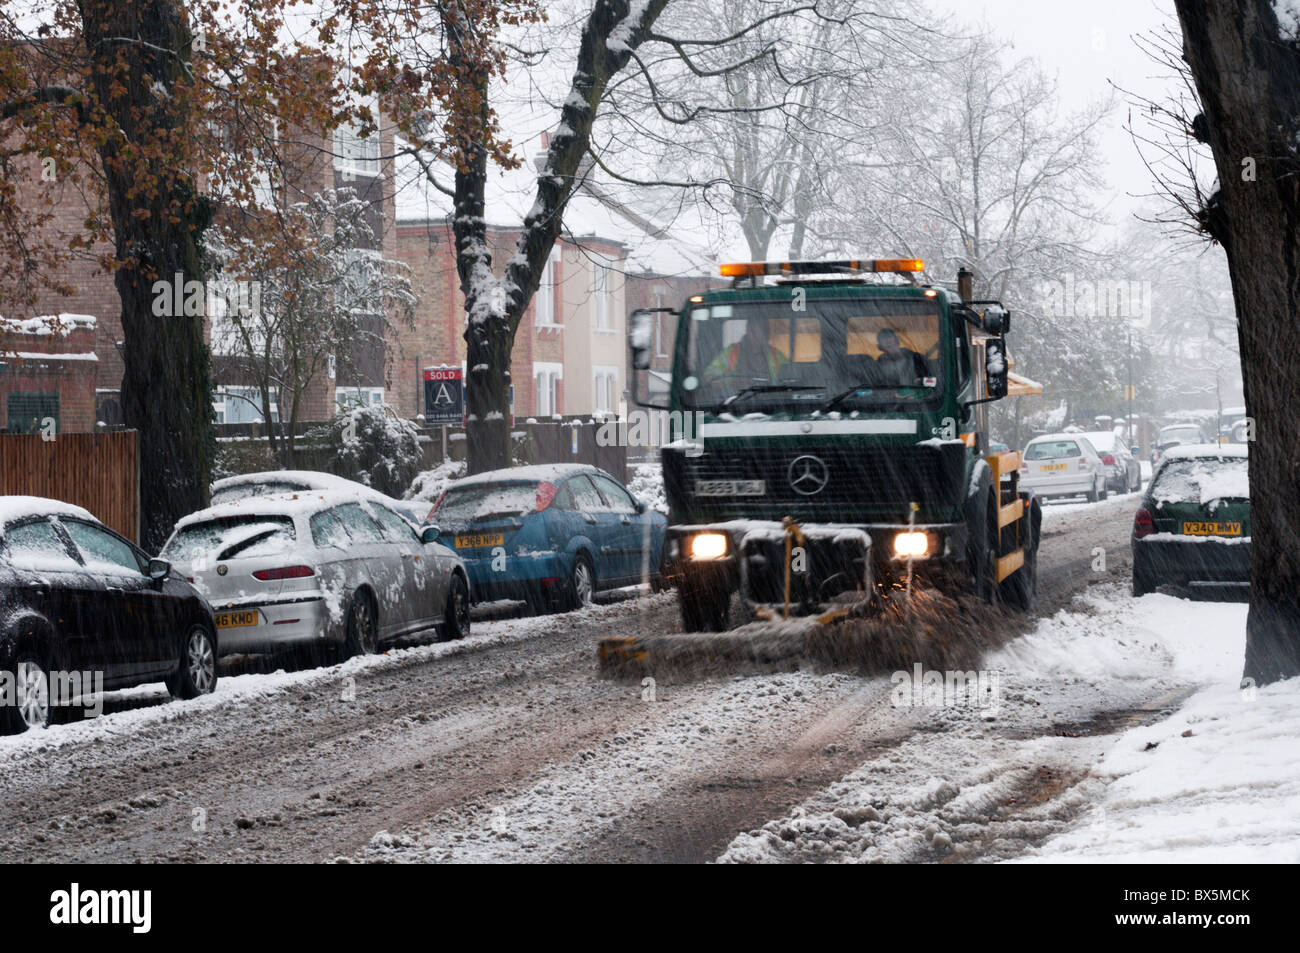 A gritting lorry, with a snow plough, spreading grit or salt on a suburban road in South London during a snowstorm - Stock Image